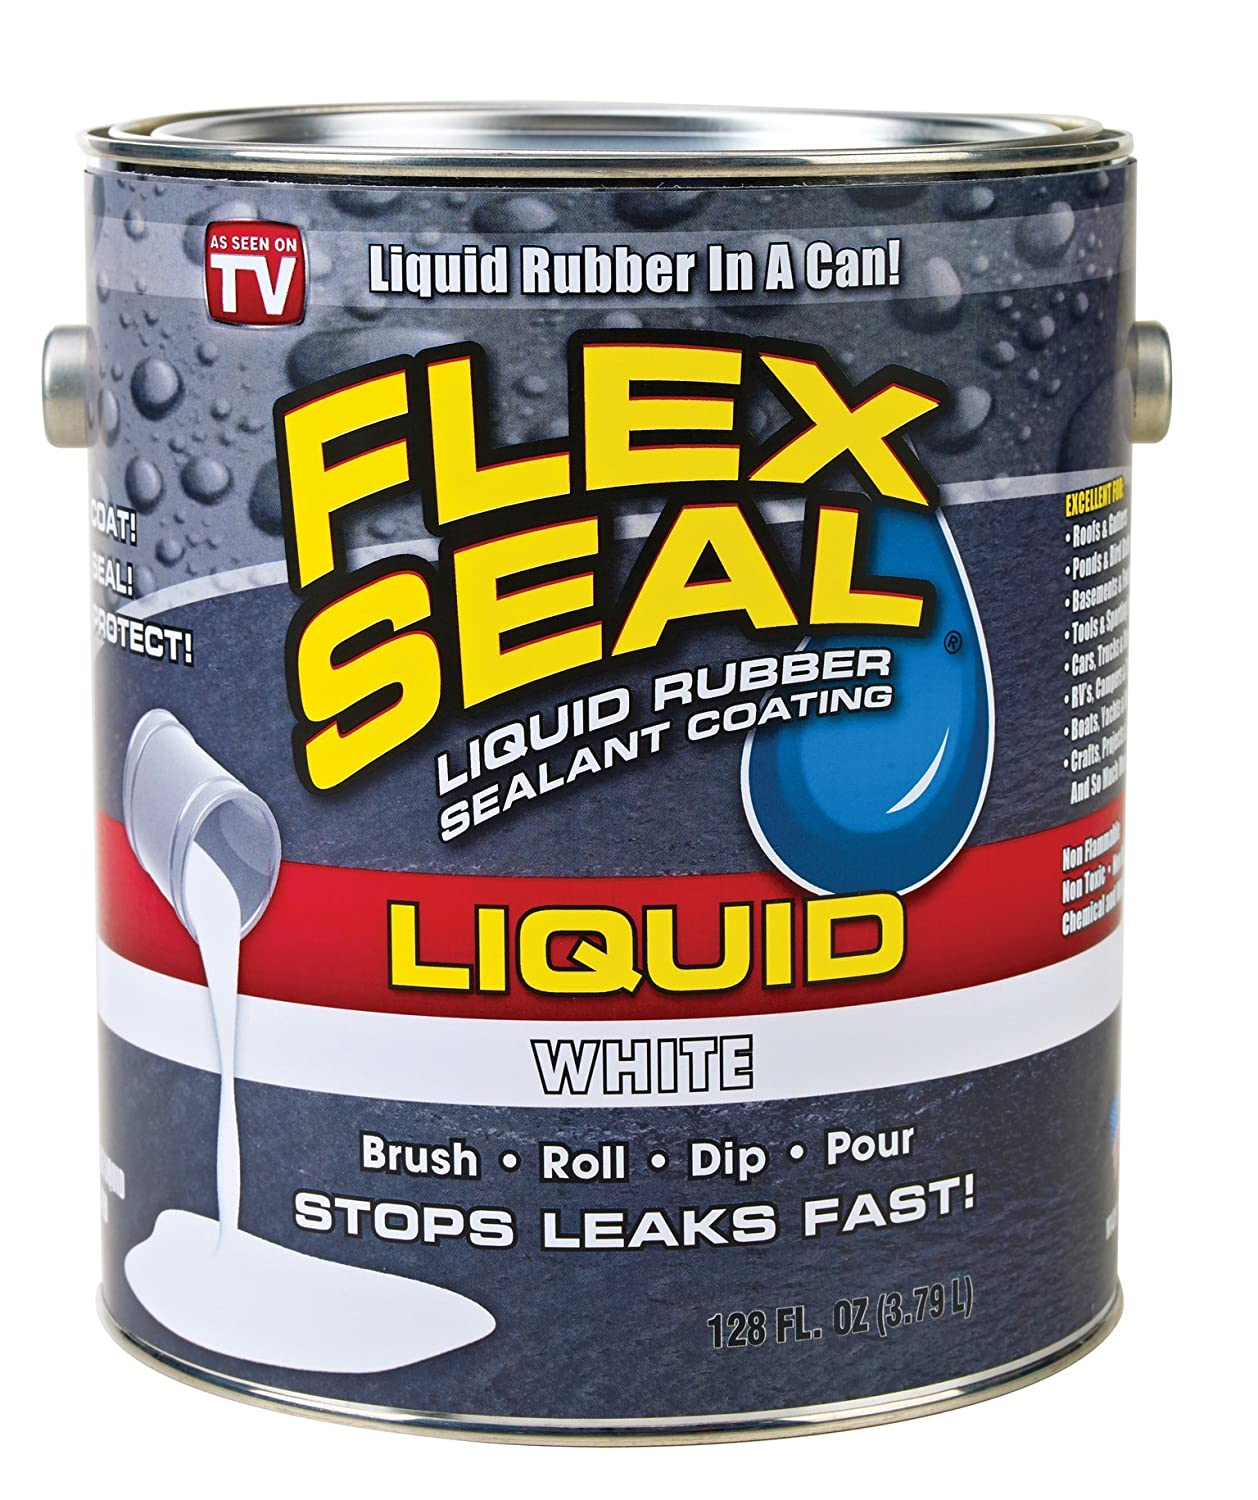 Flex Seal Liquid Rubber in a Can